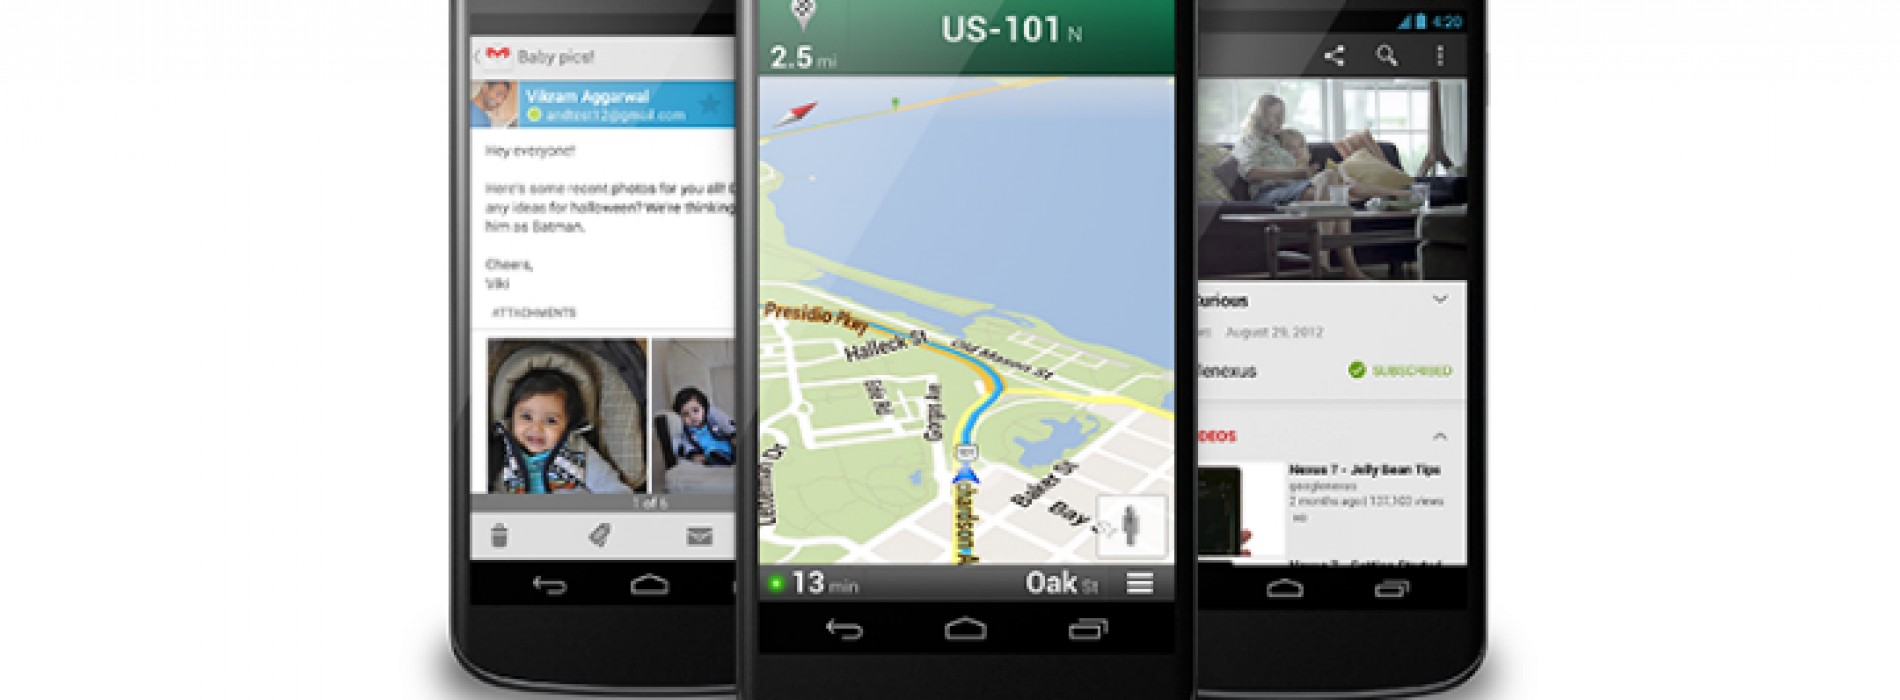 Google Nexus 4 will be available for UK and Germany at 5 PM GMT